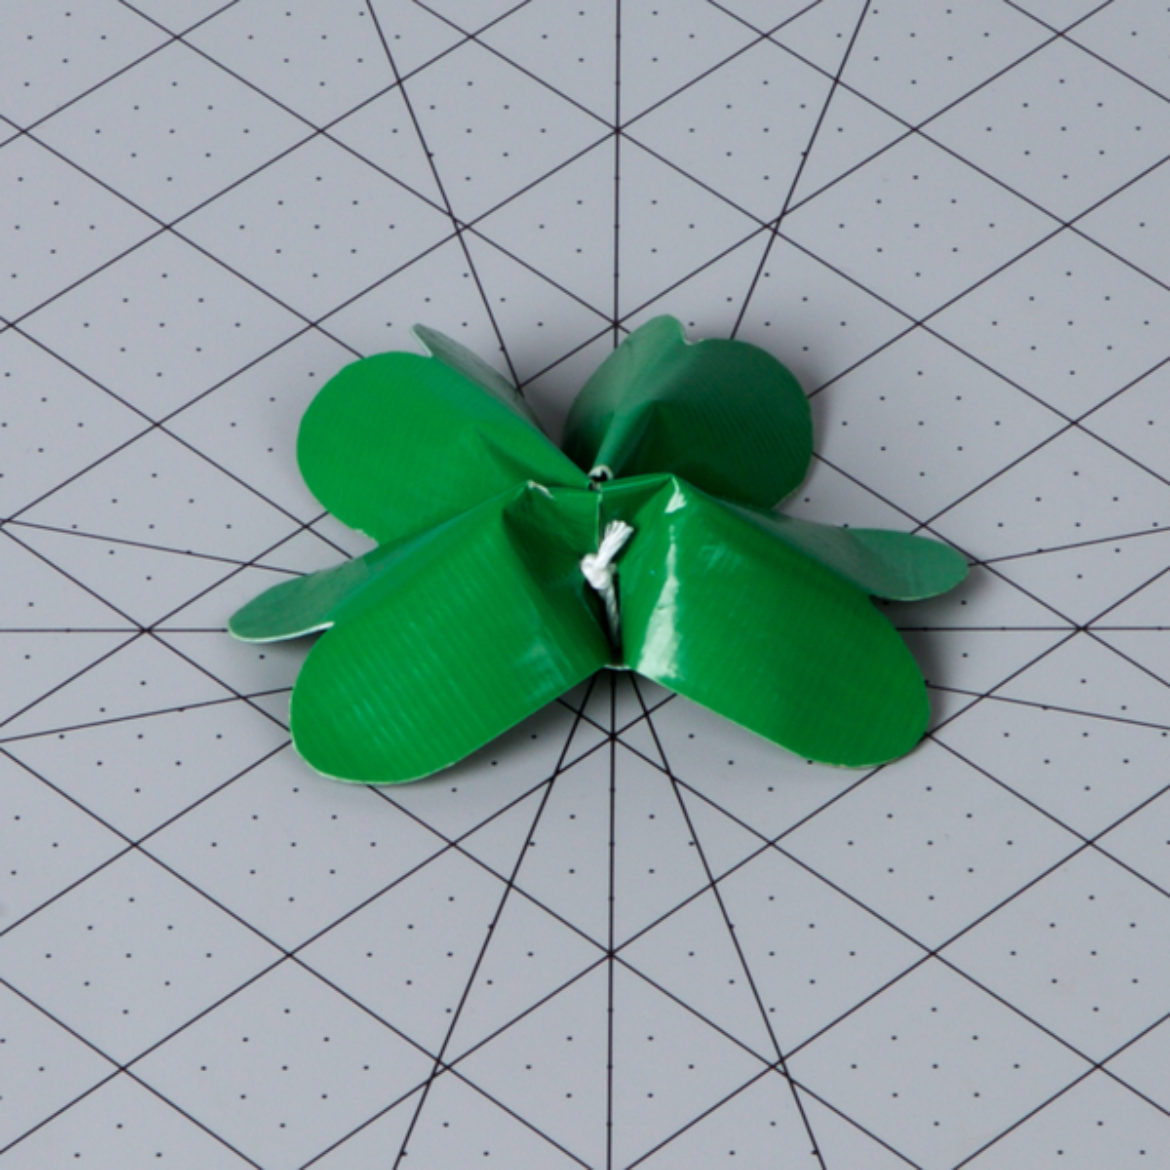 string pulled tight to scrunch the leaves together into the shape of a clover